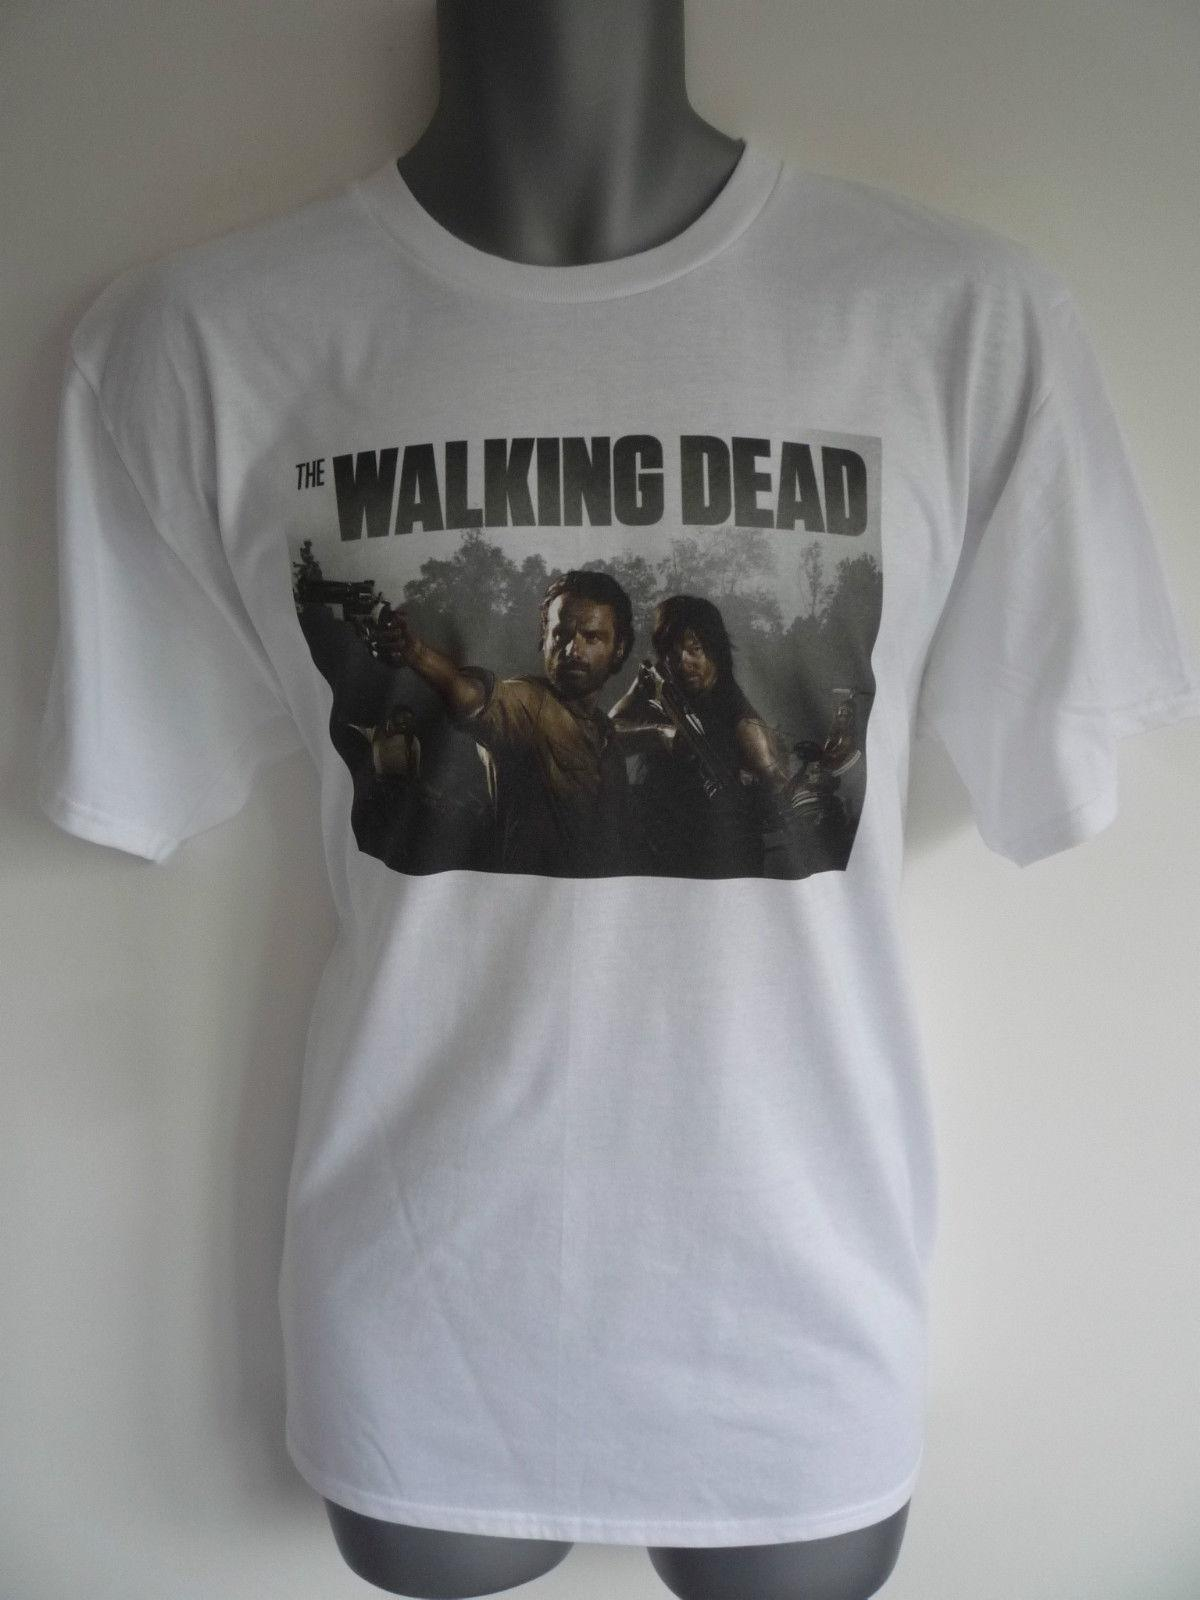 748614c8f4 THE WALKING DEAD T SHIRT DARYL RICK WALKERS ZOMBIES Brand 2018 Men'S  Lastest Printed Funny T Shirt Fashion Short Sleeve Buy Online T Shirts Make Tee  Shirts ...